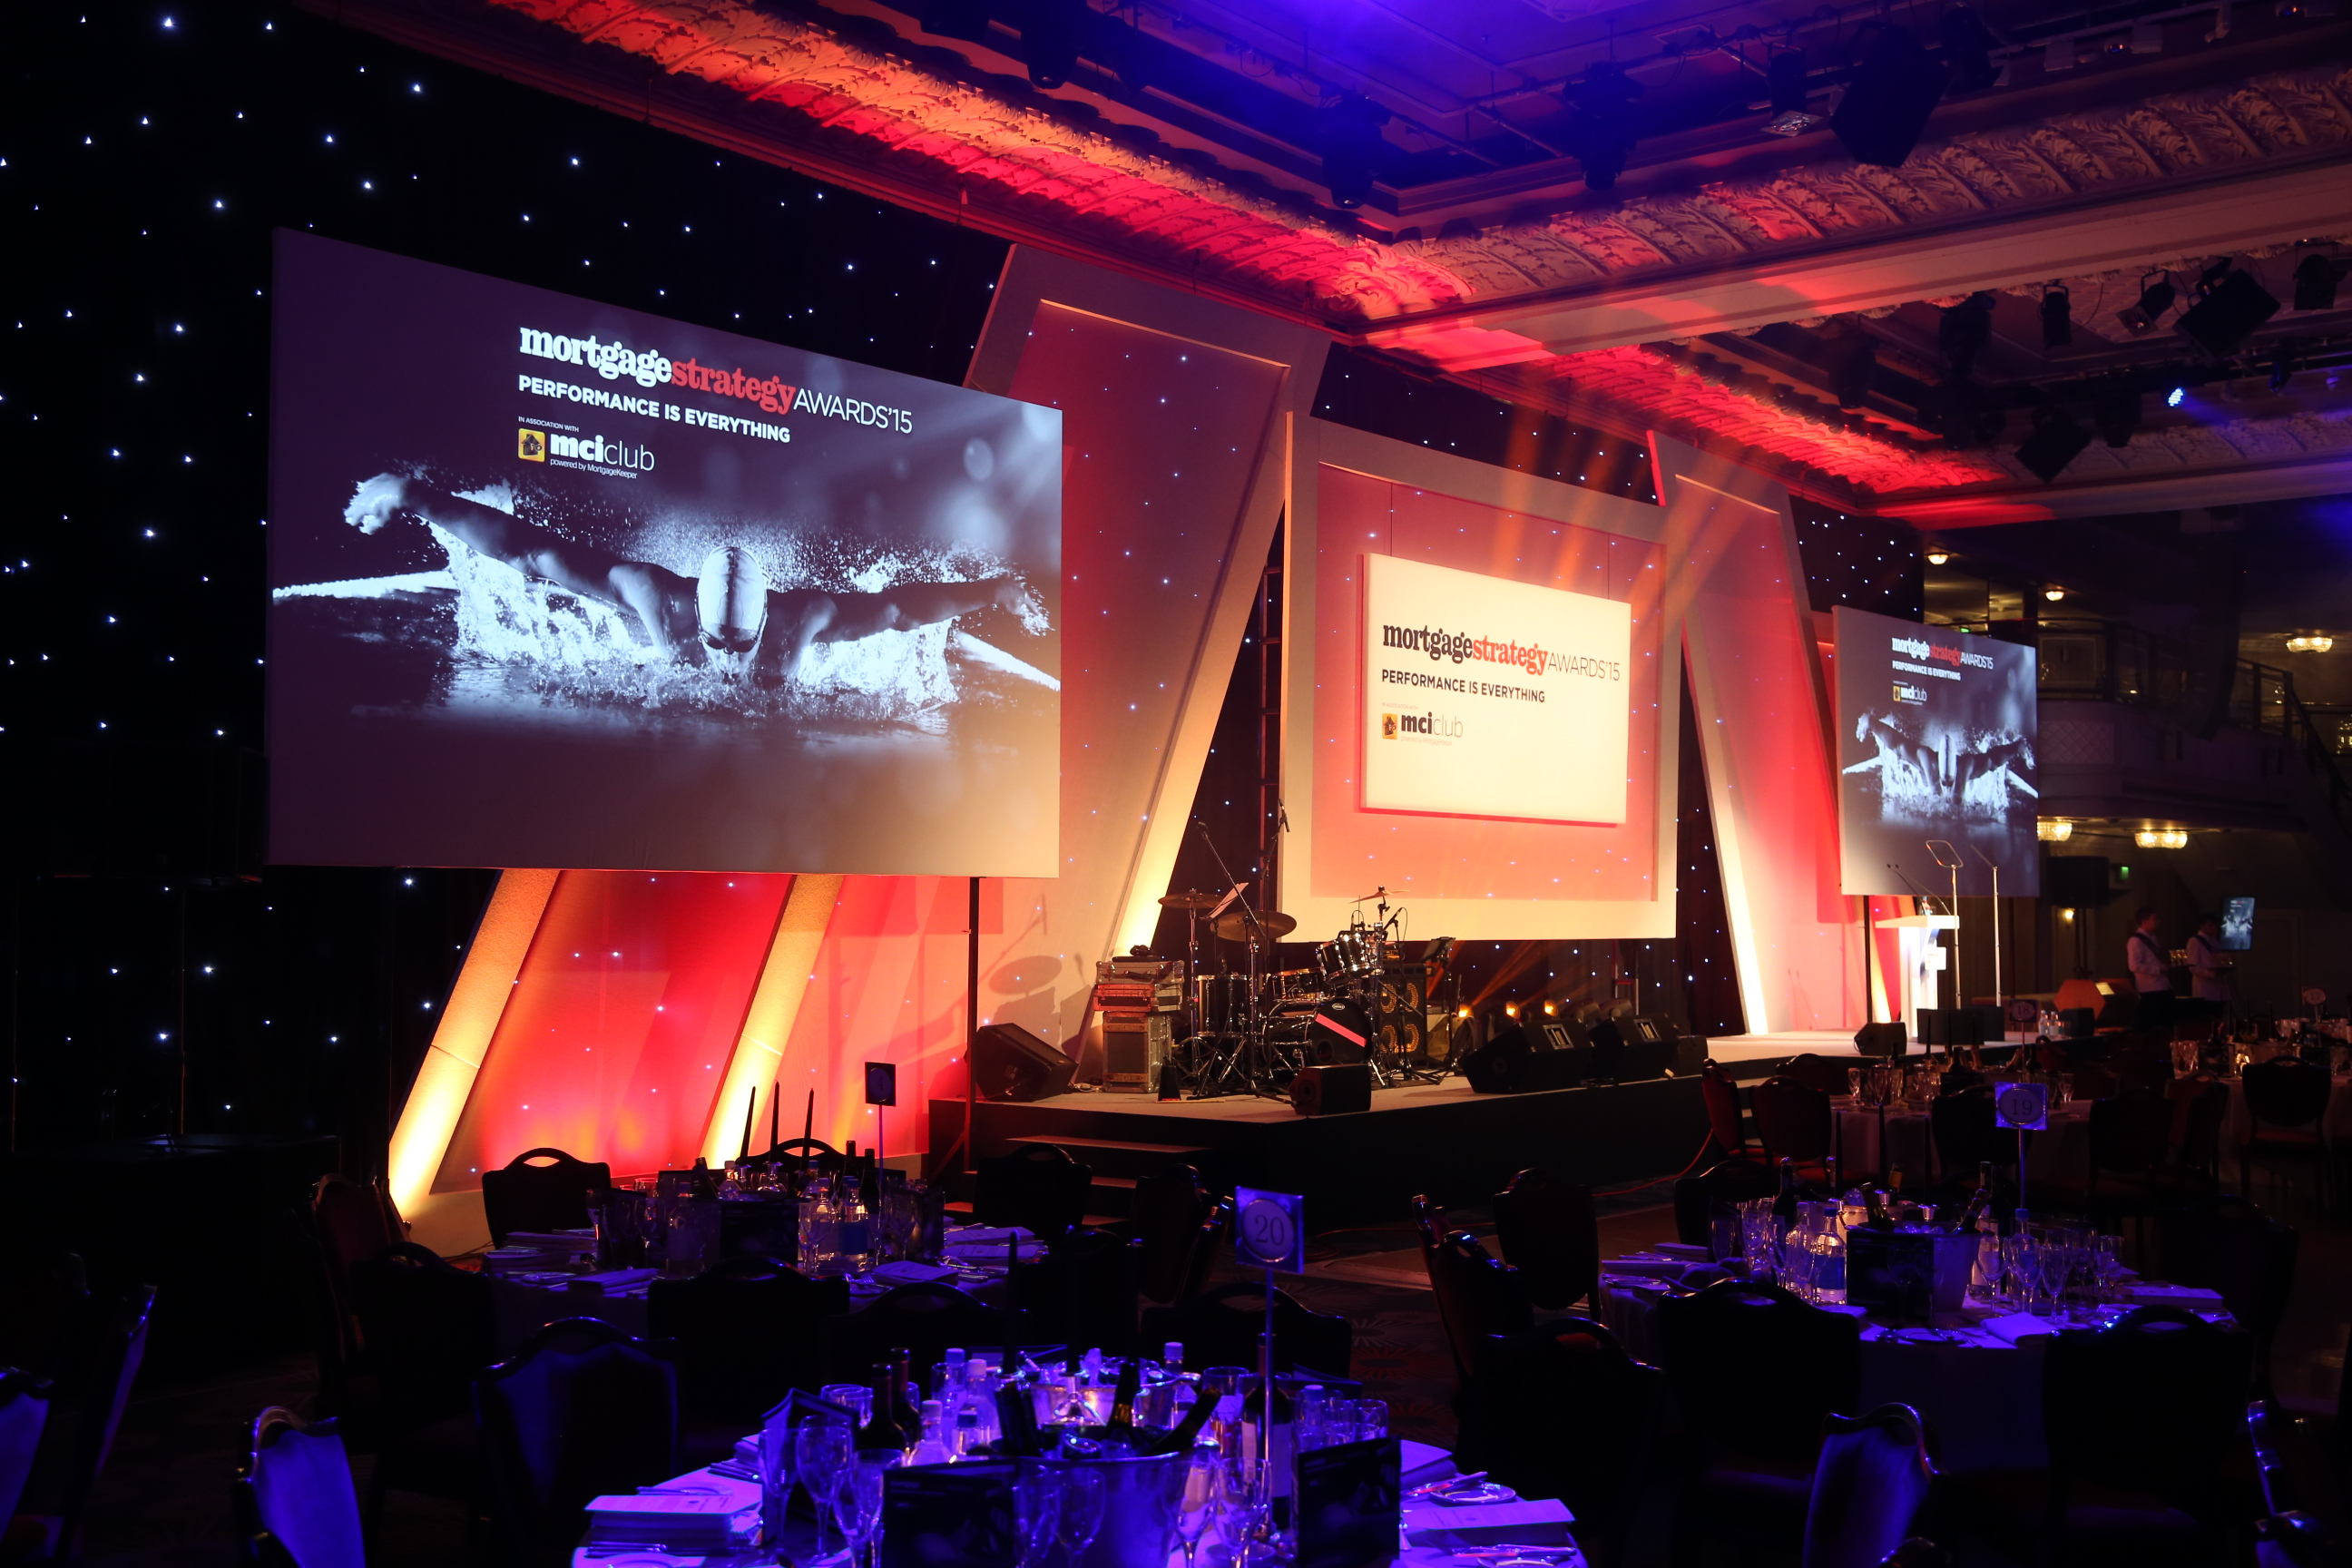 Mortgage Strategy Awards 2015